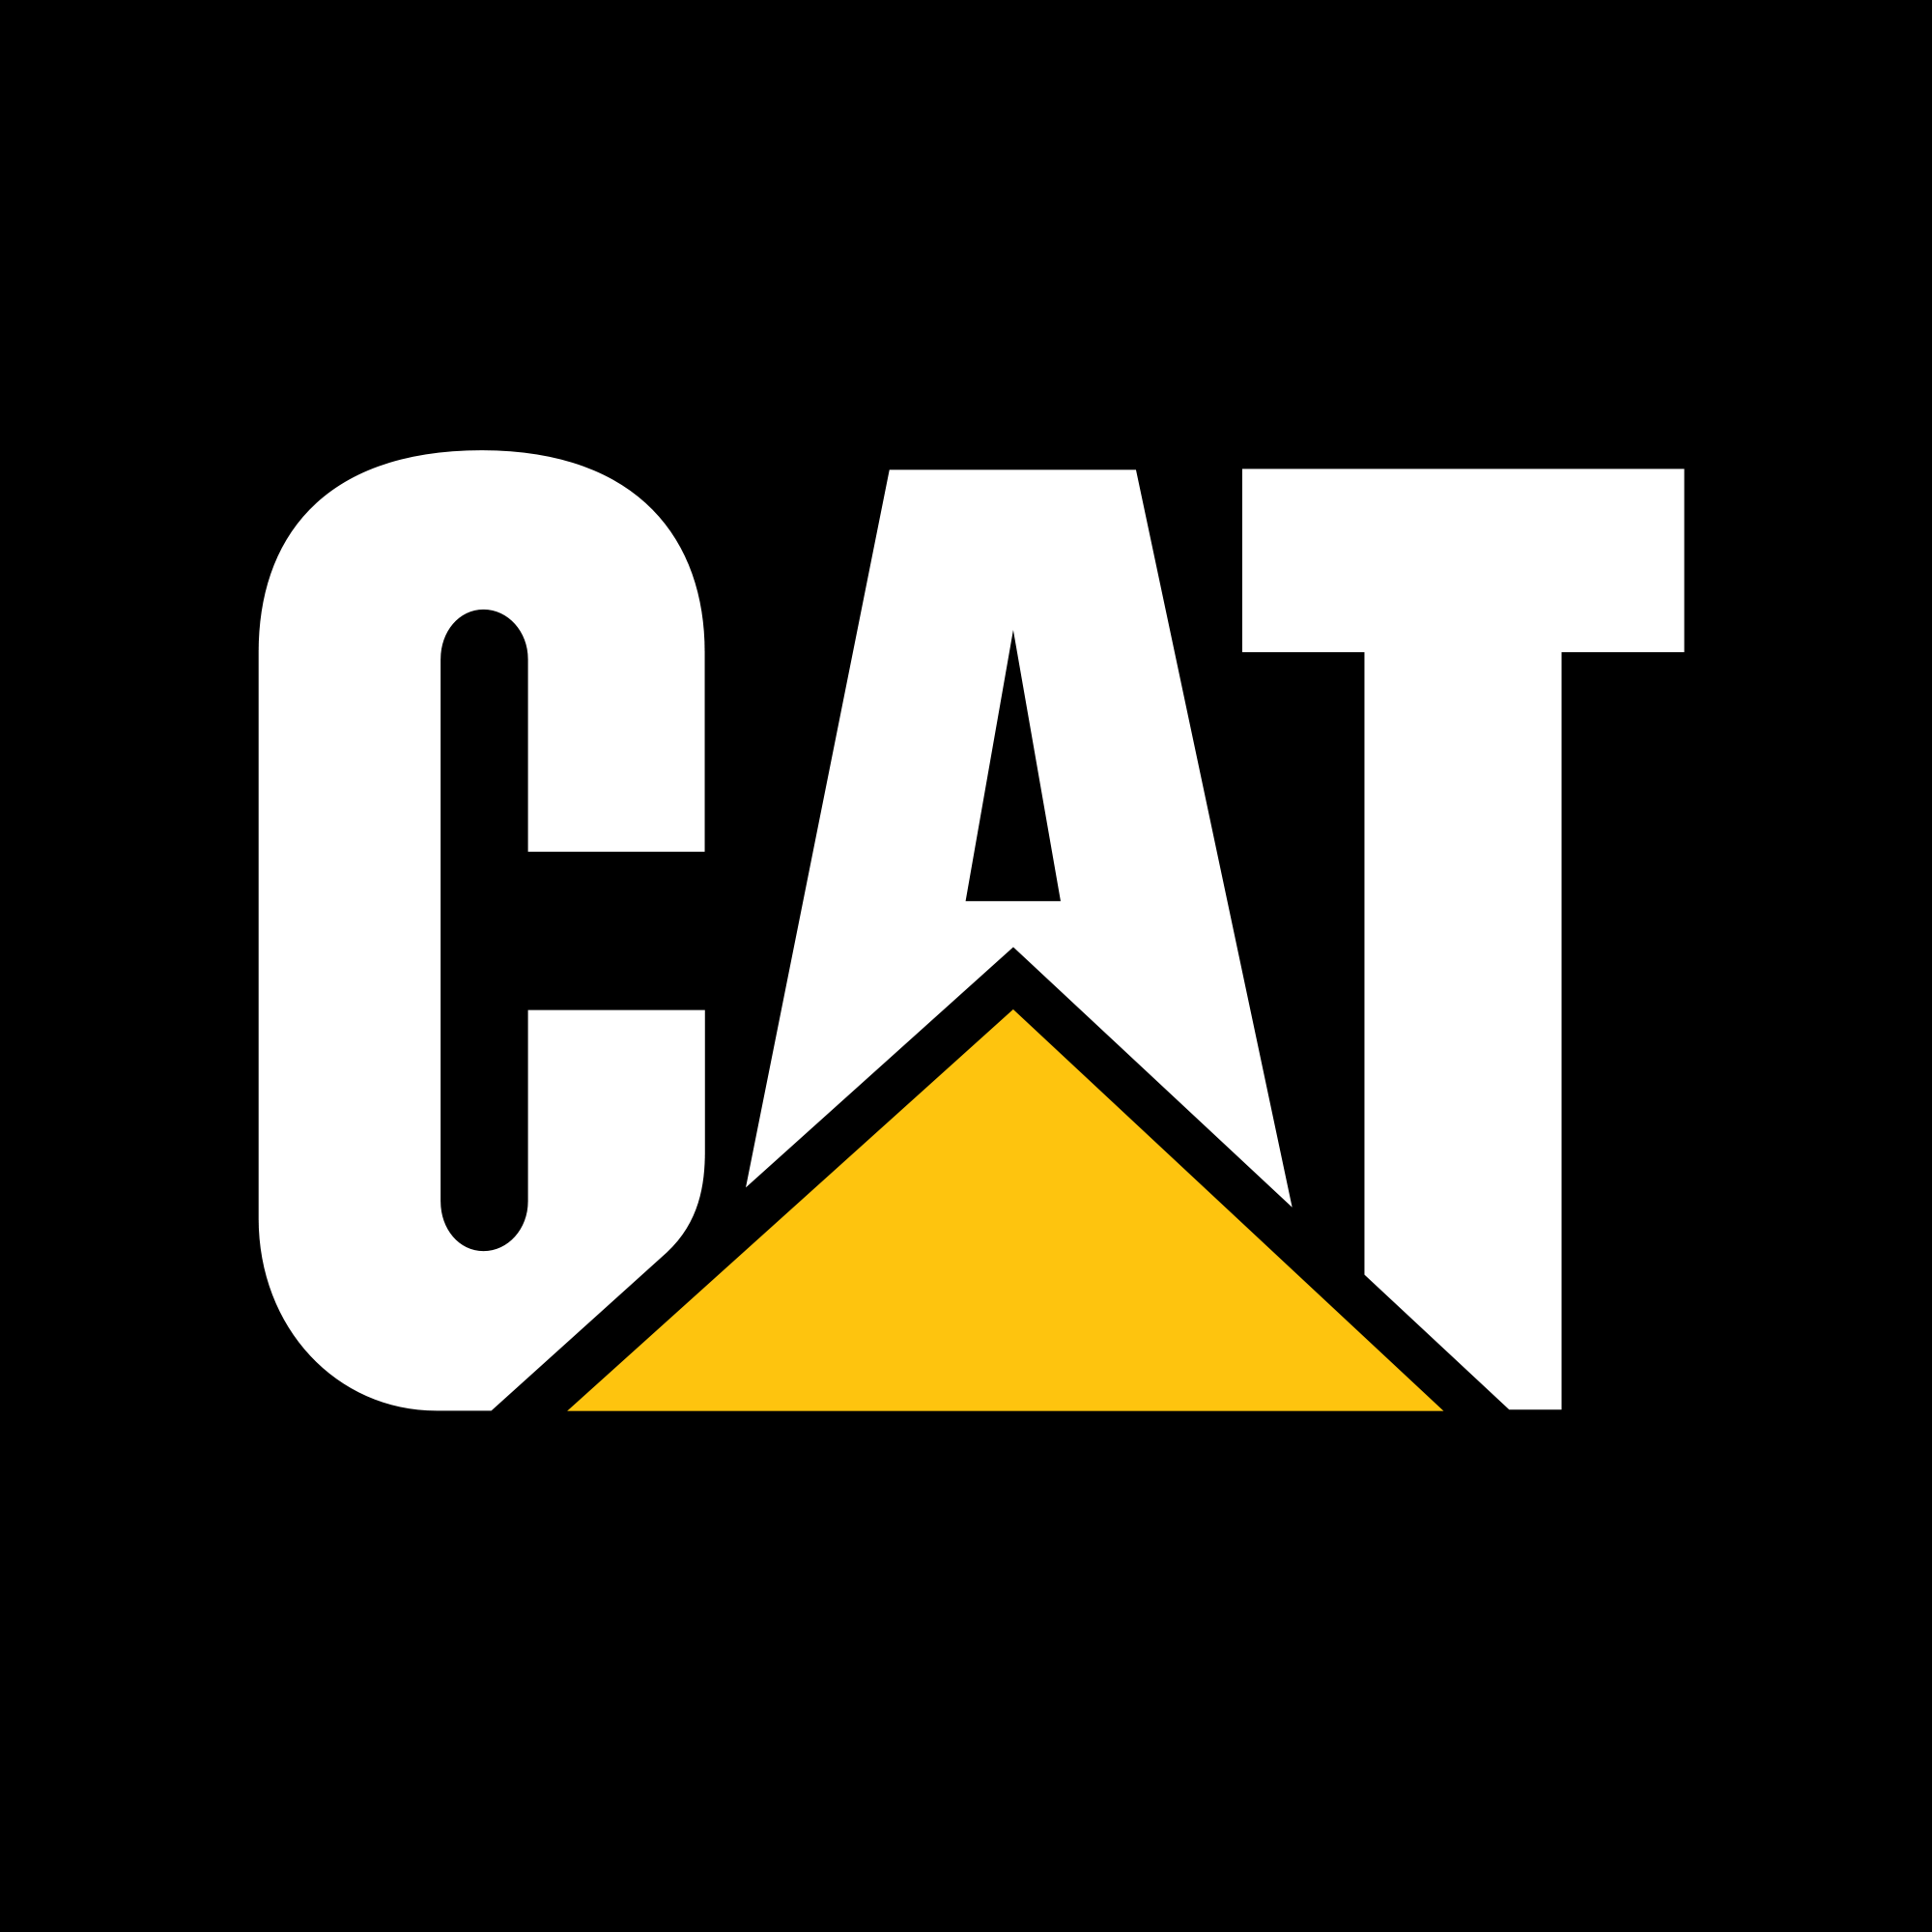 Caterpillar_logo